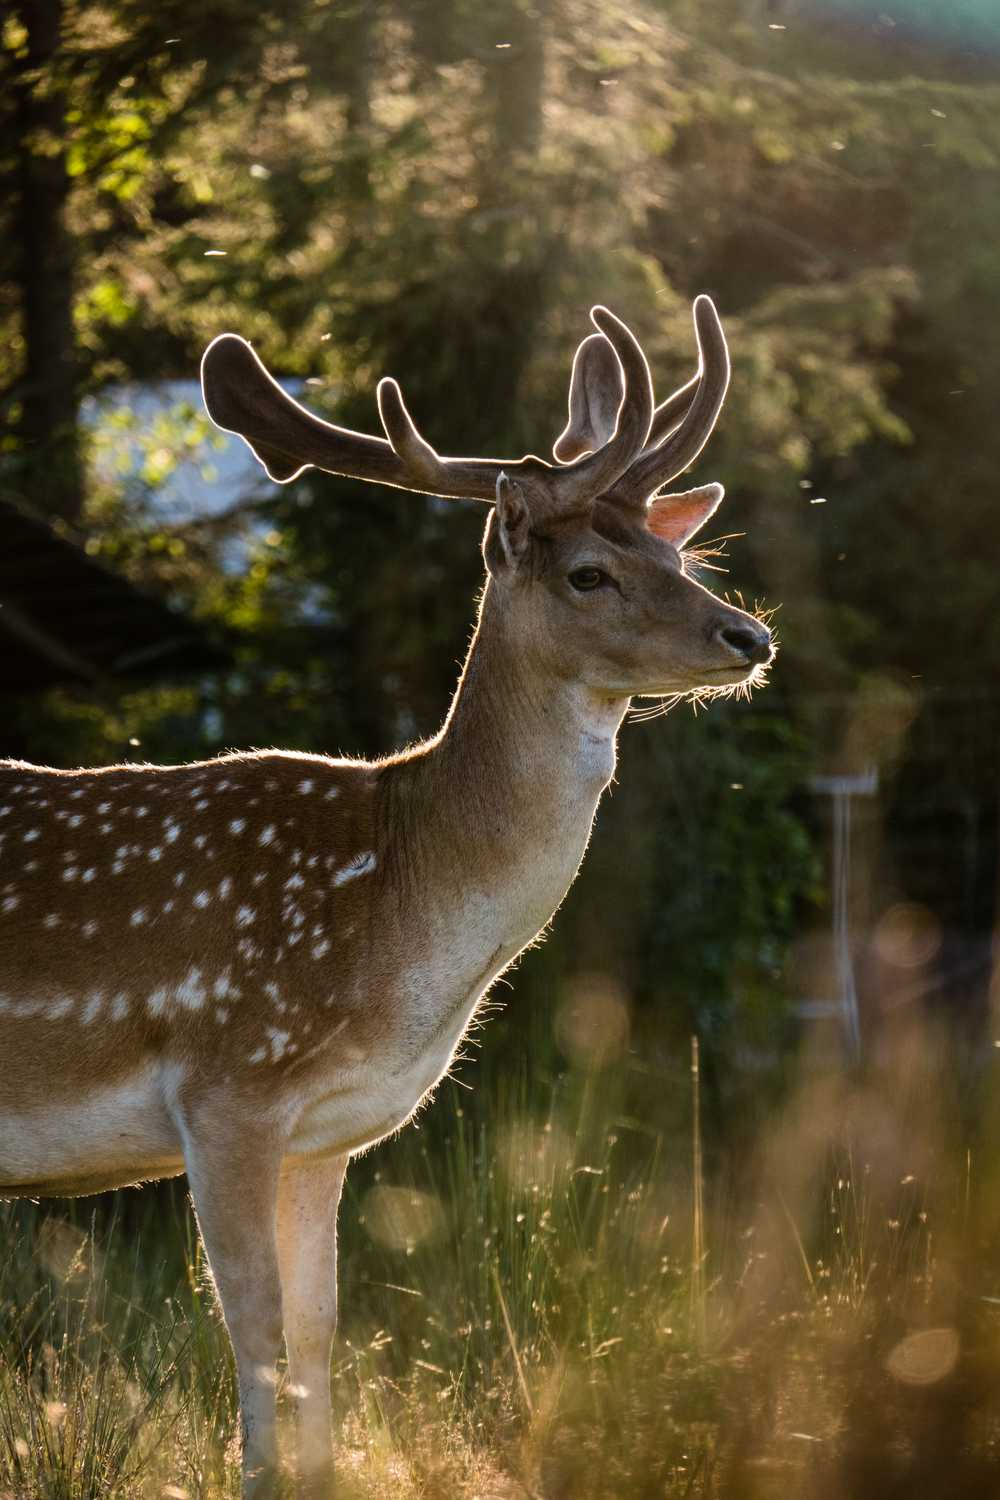 photography of deer shined by sunlight